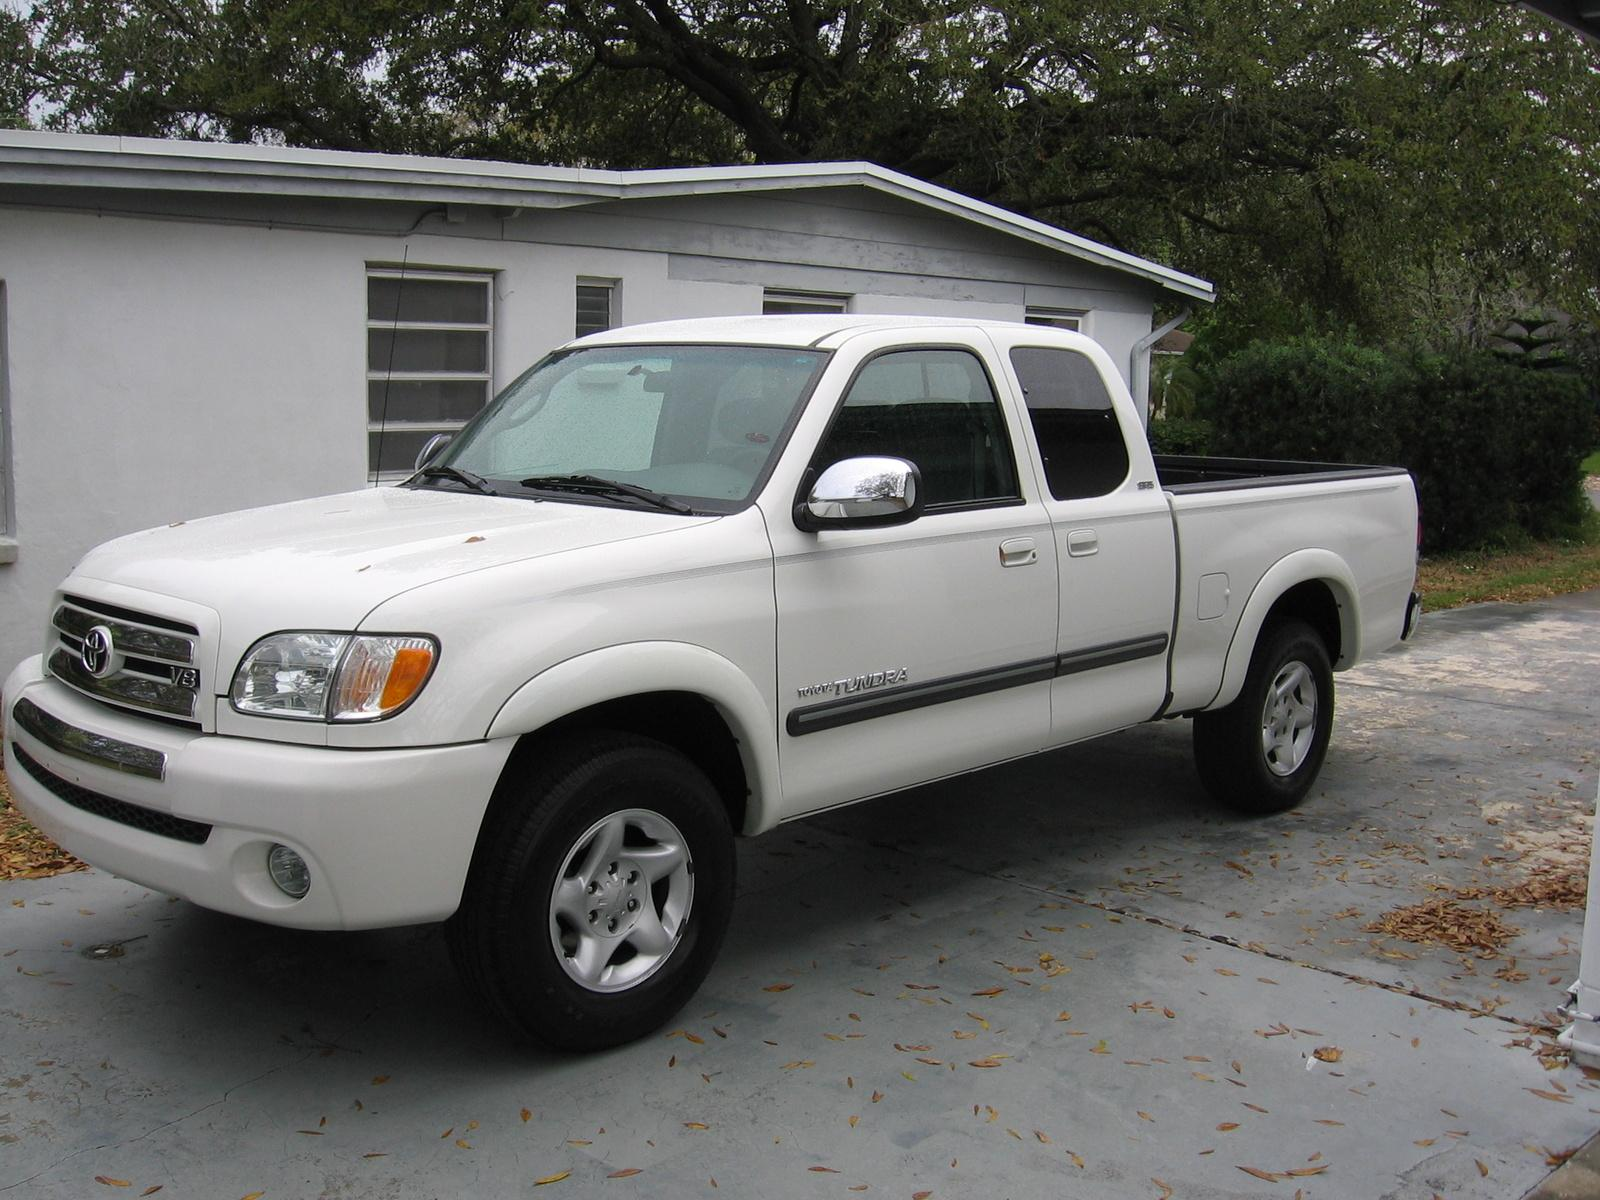 2002 toyota tundra information and photos zombiedrive rh zombdrive com